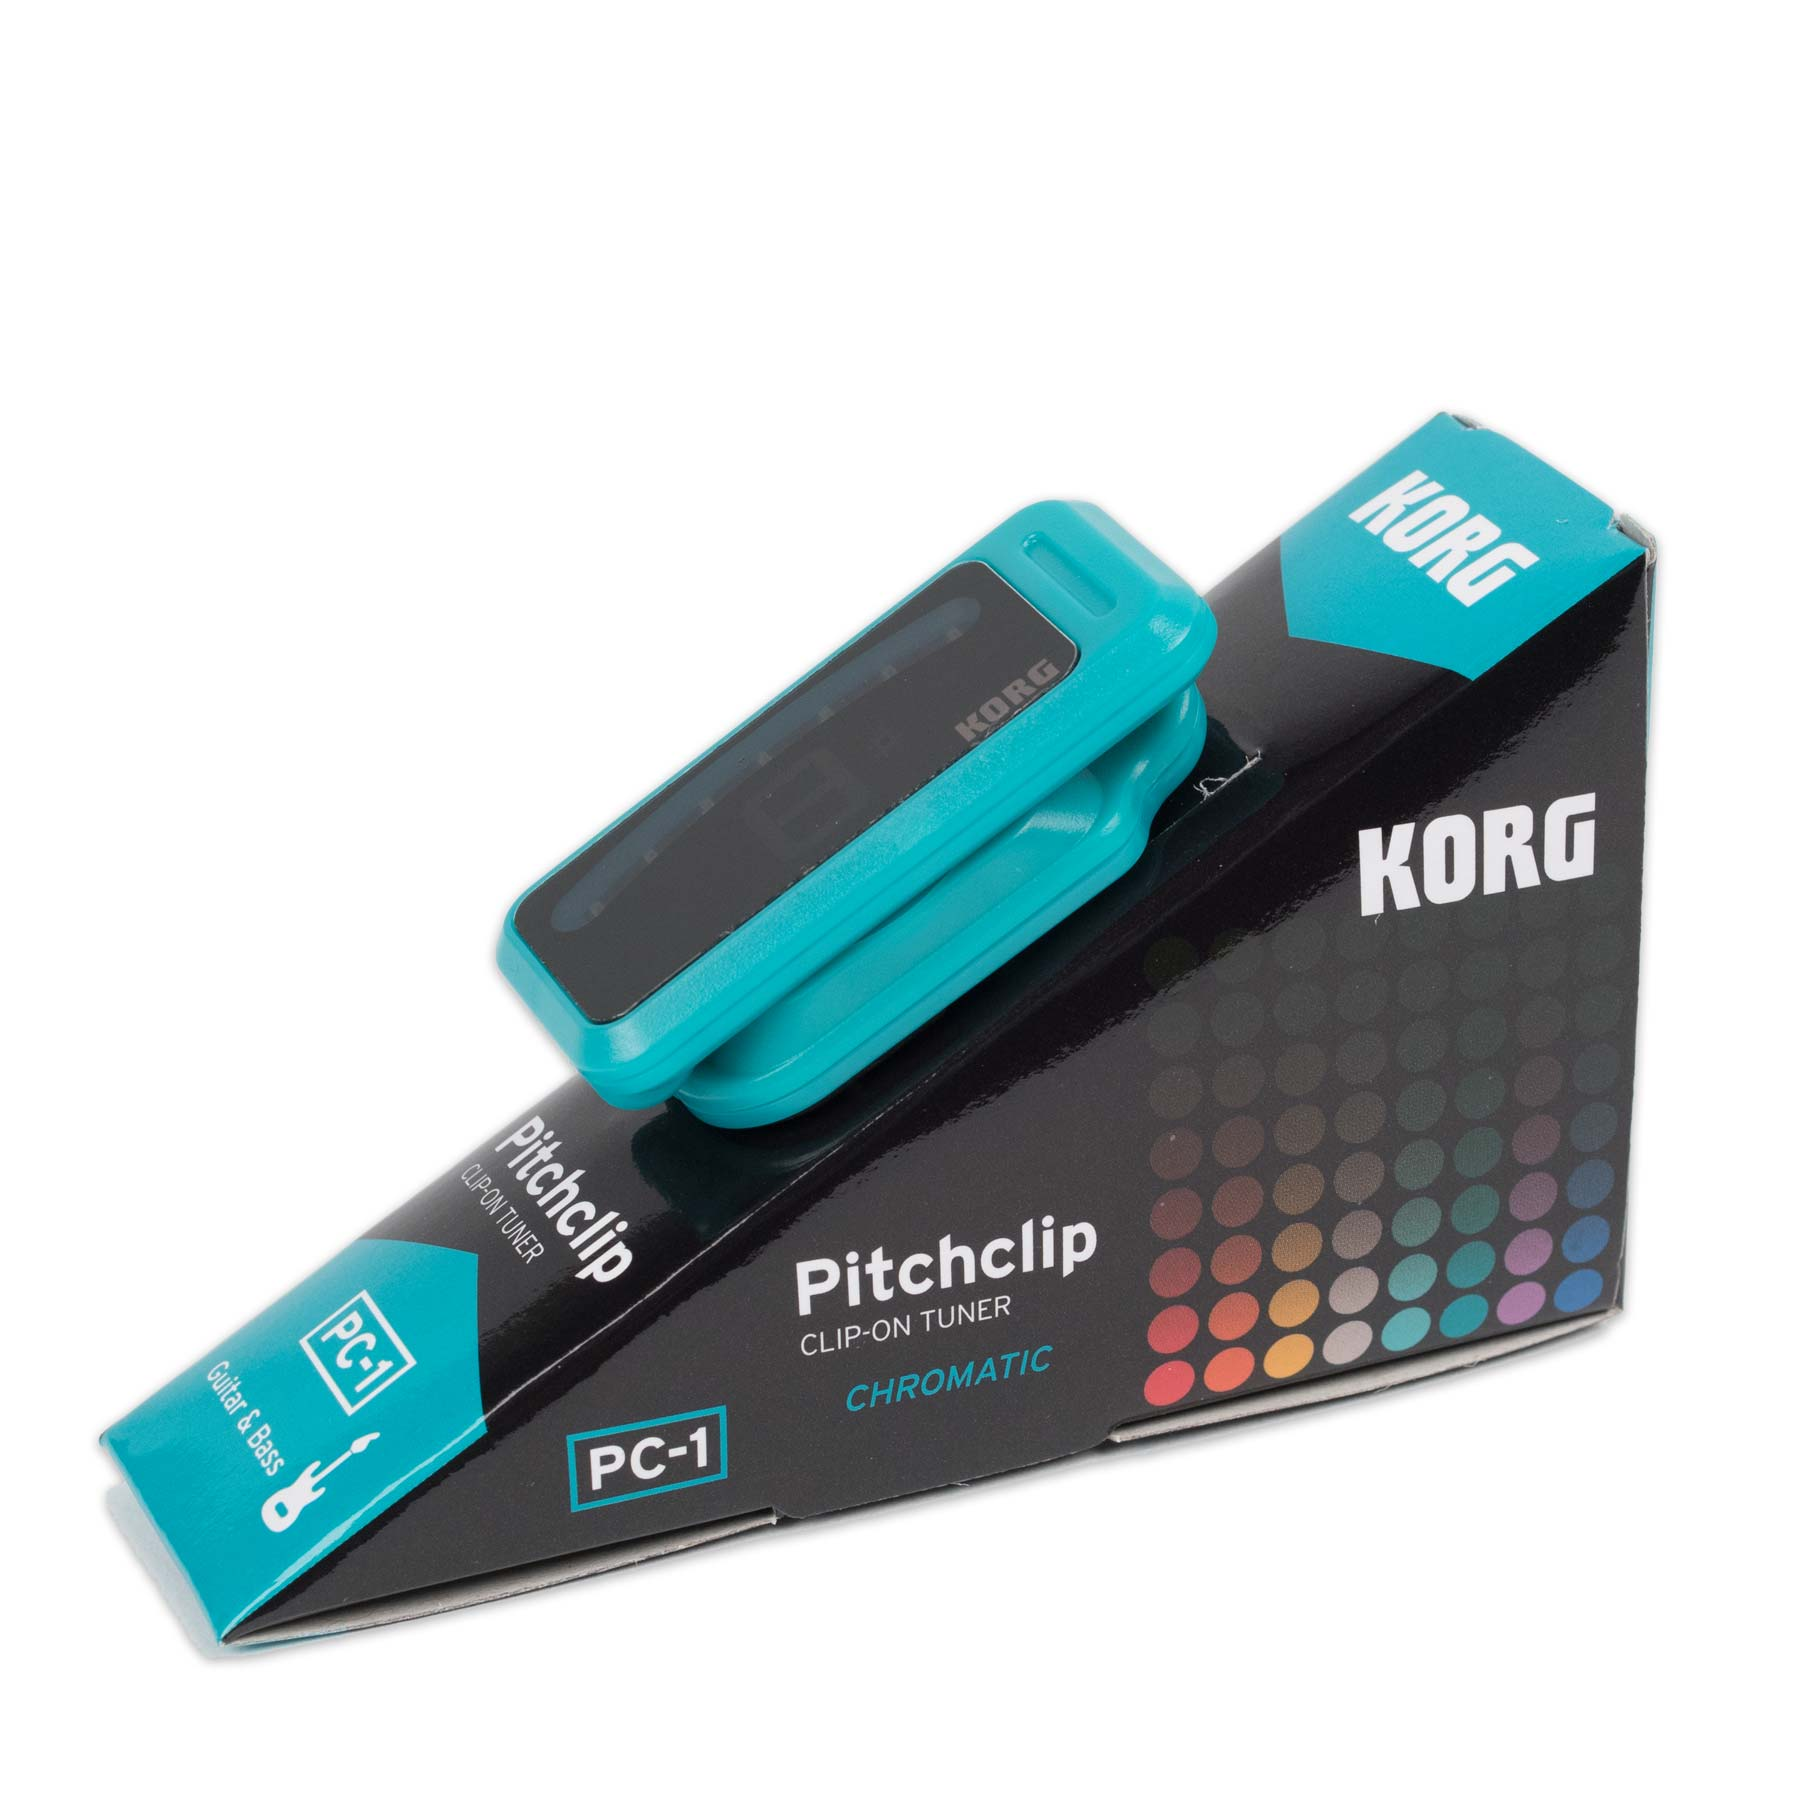 KORG PITCHCLIP CLIP ON CHROMATIC TUNER - EMERALD GREEN